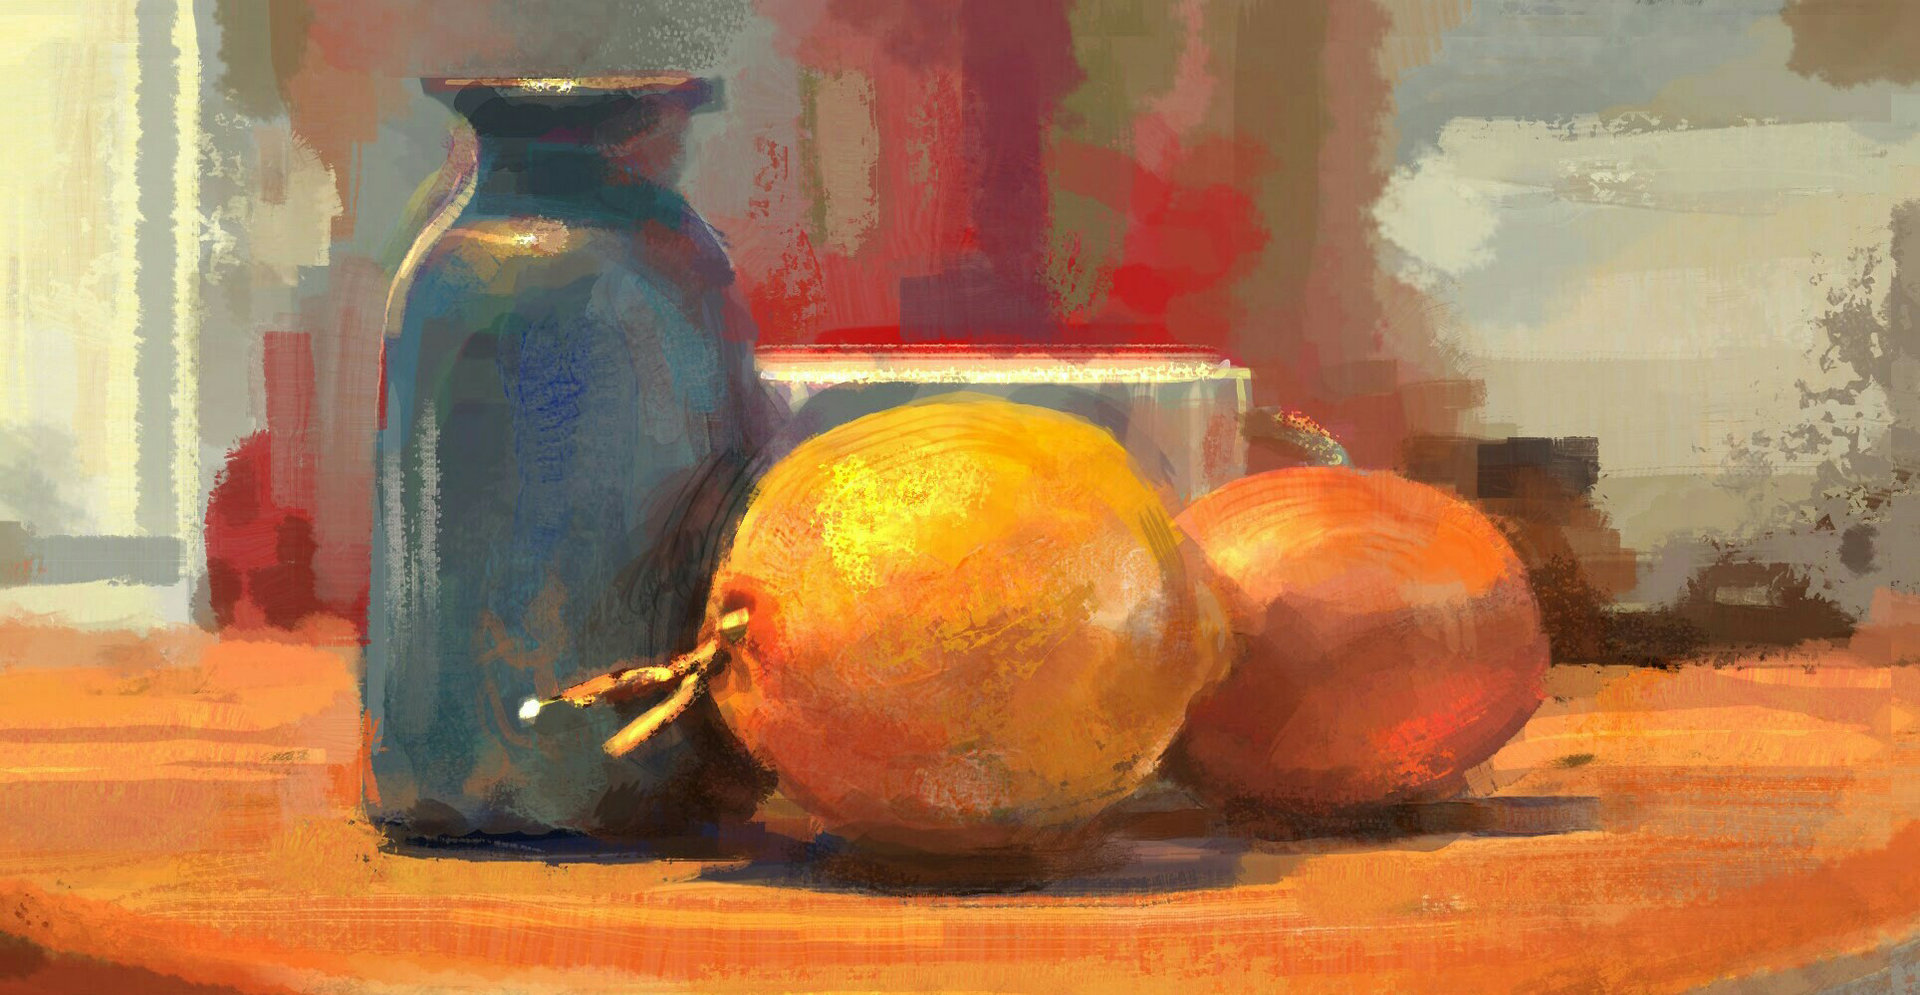 Paolo giandoso digital stilllife 01